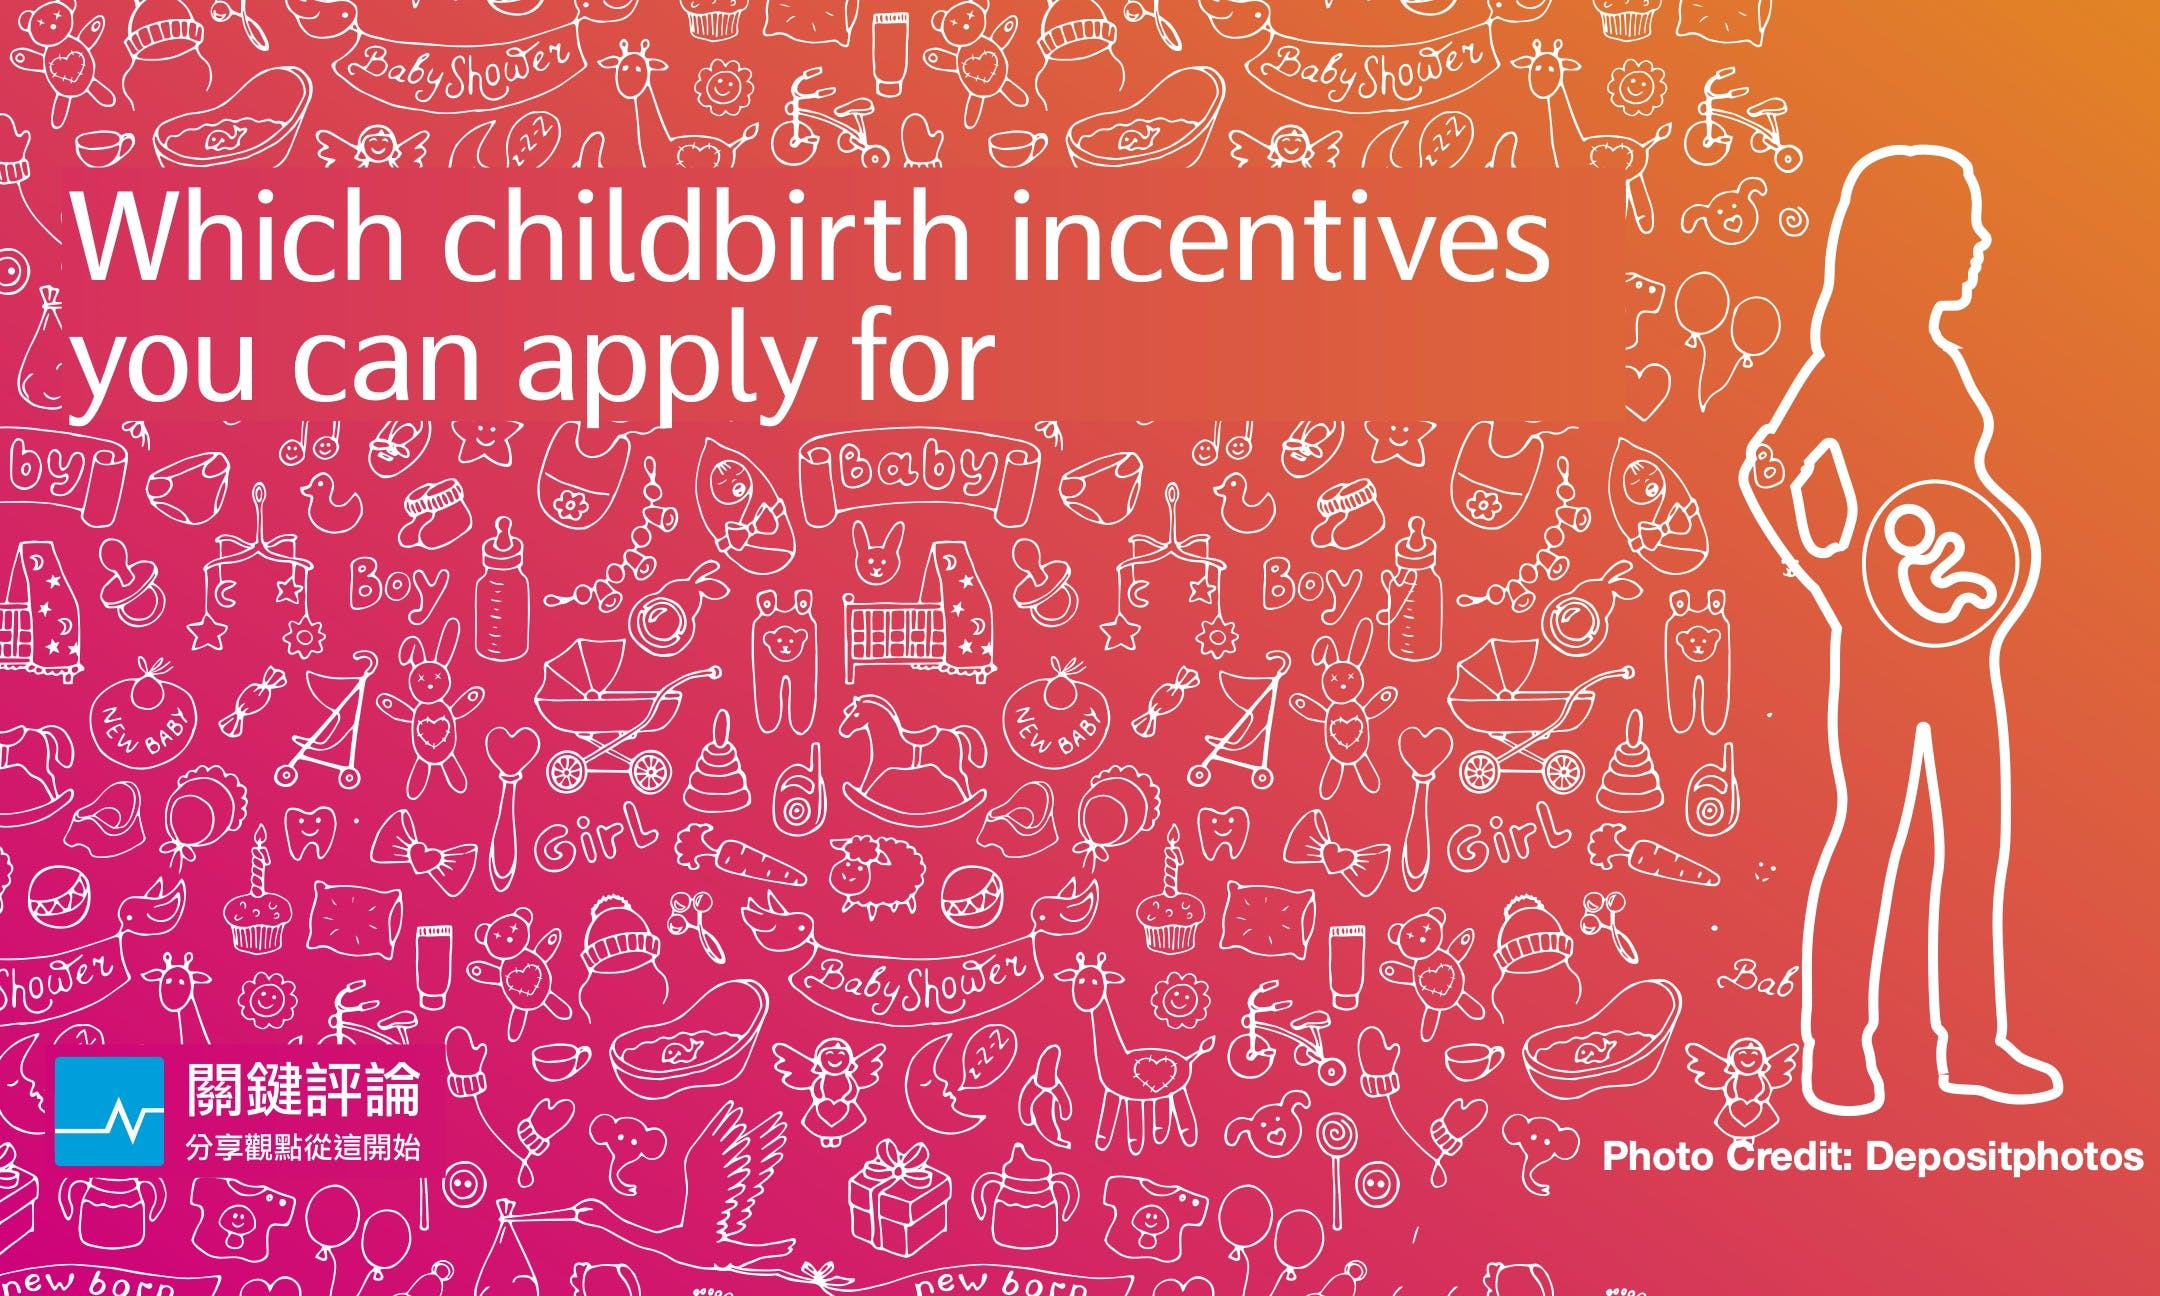 INFOGRAPHIC: 5 Graphics to Explain Taiwan's Childbirth Incentives